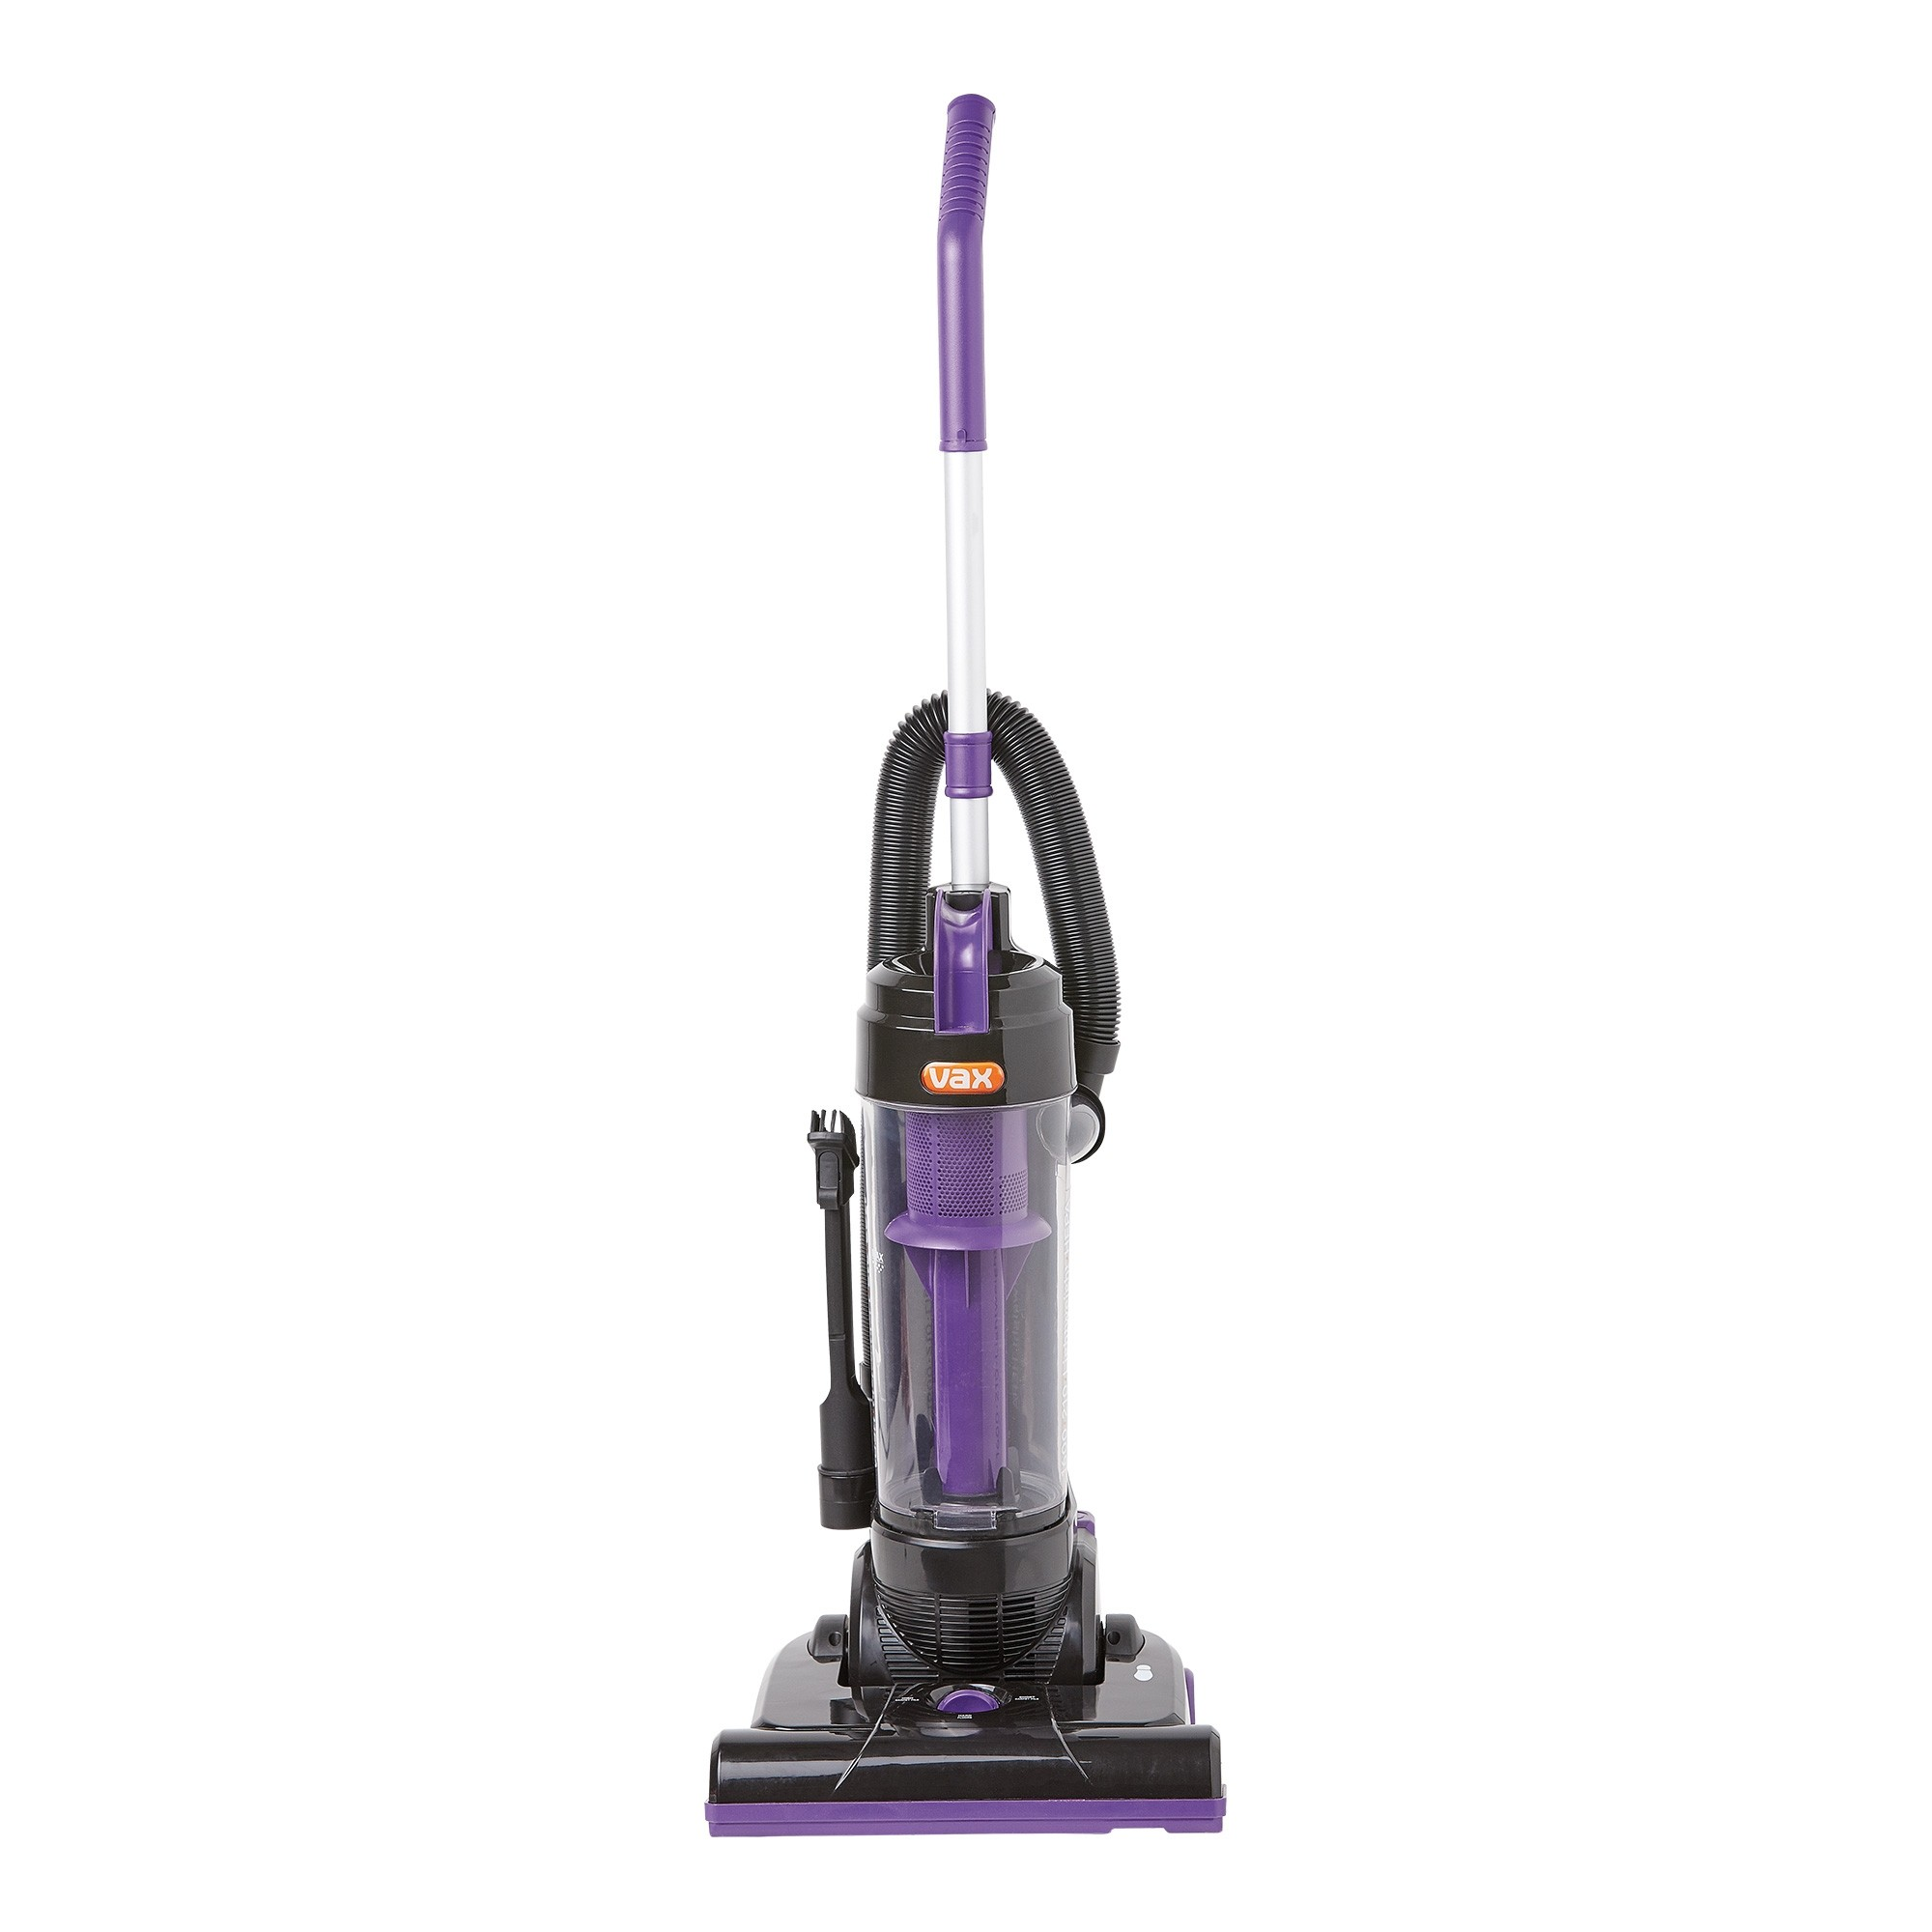 Vax Black Edition Upright Vacuum Cleaner